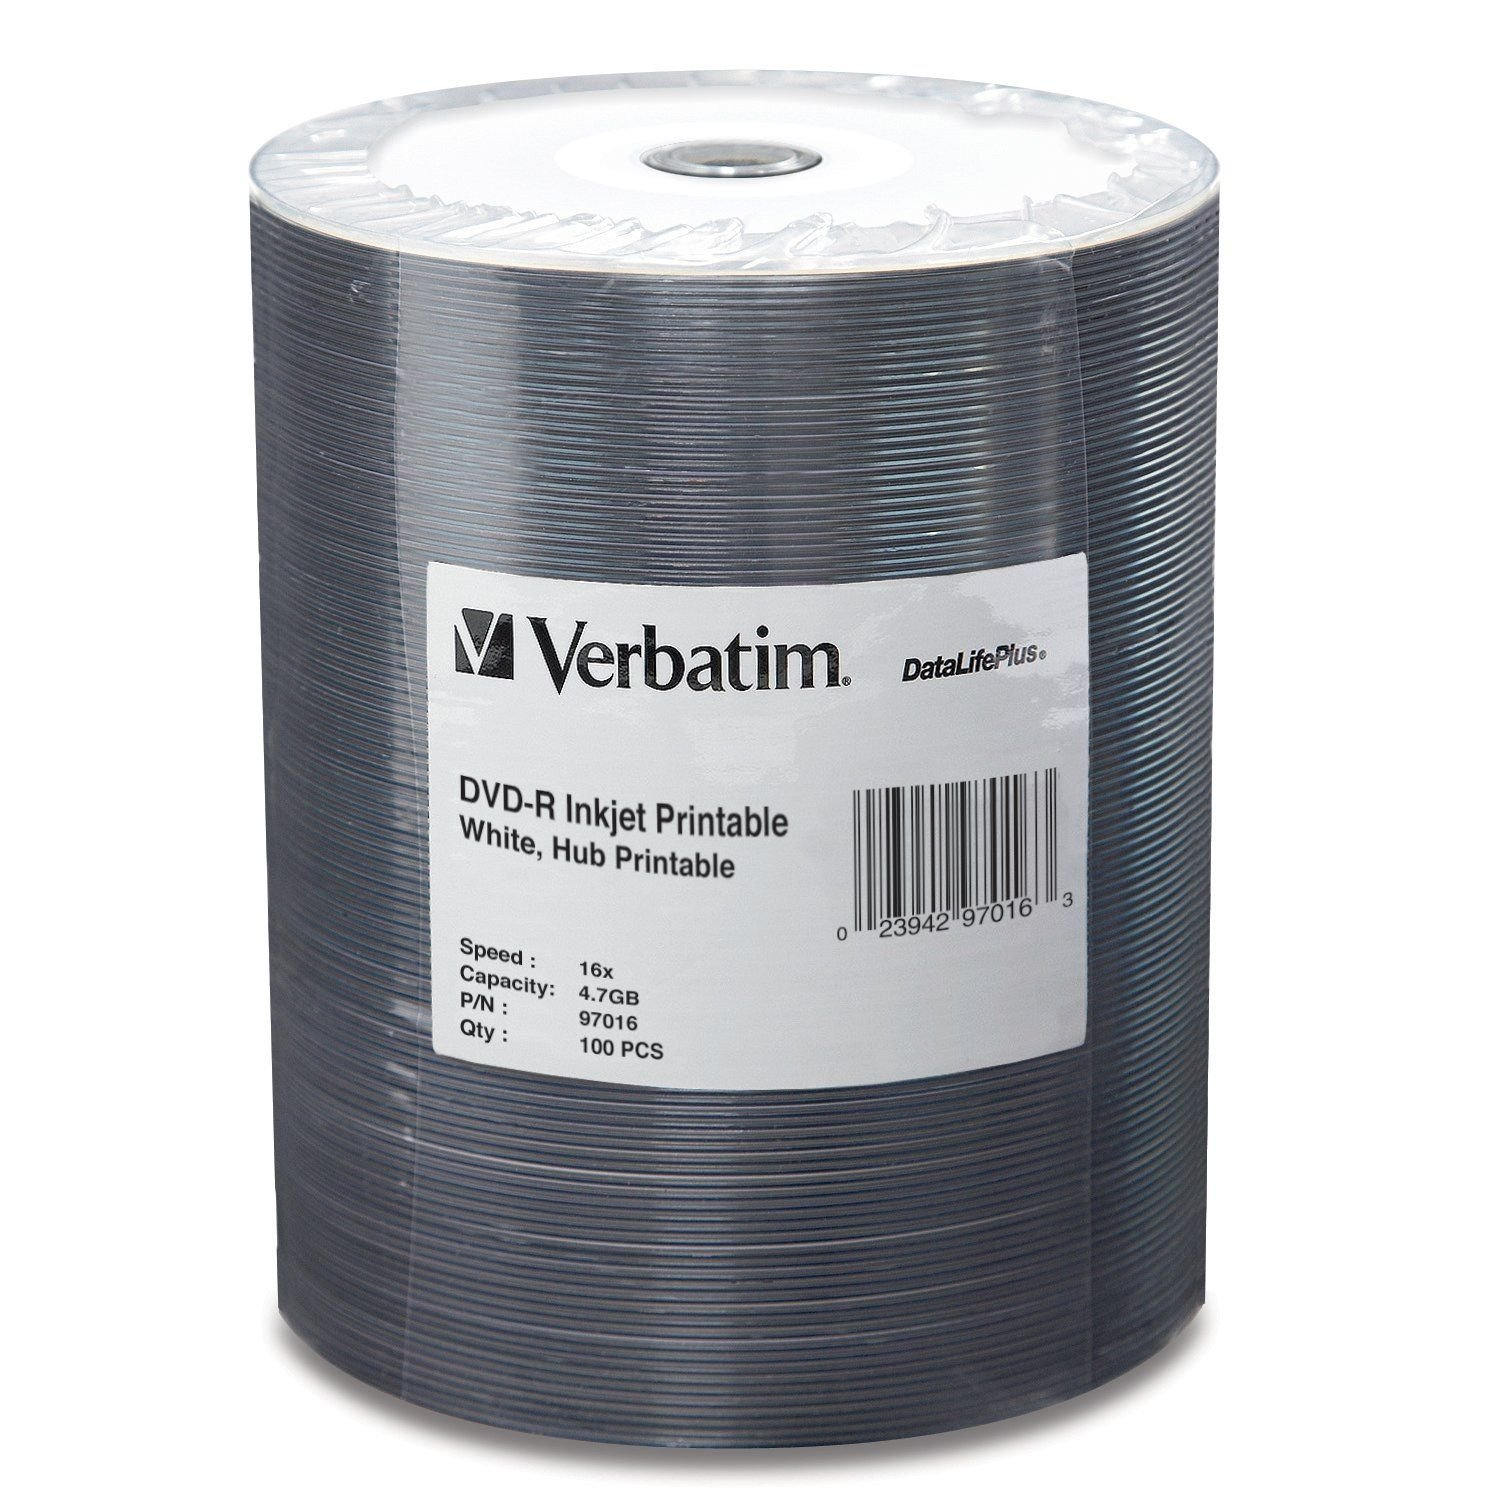 Verbatim DVD-R 4.7GB 16X DataLifePlus White Inkjet Printable Surface, Hub Printable - 100pk Tape Wrap